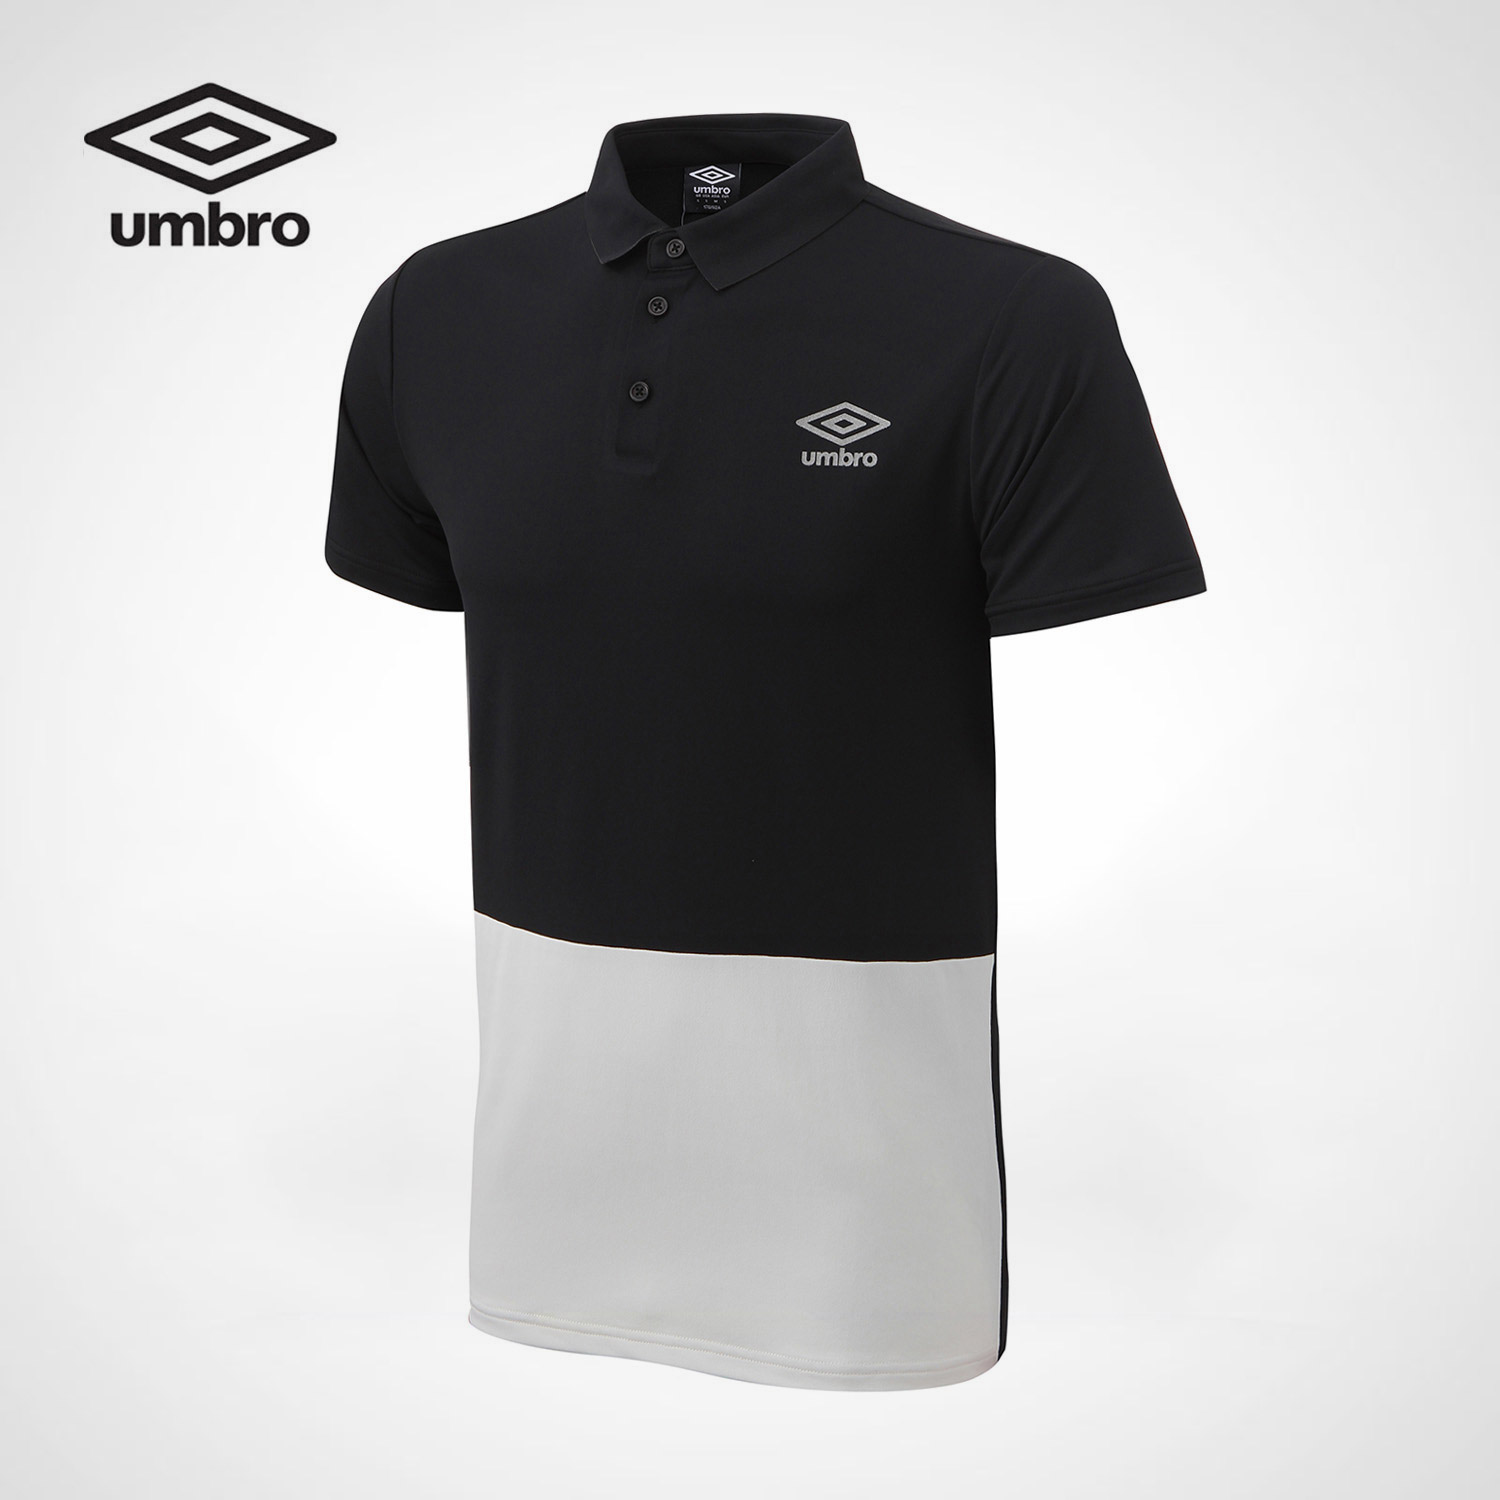 Umbro 2017 New Men Sports Short Sleeved Polo Sweater POLO Shirt Men Cotton Two-color Sportswear UCC63111